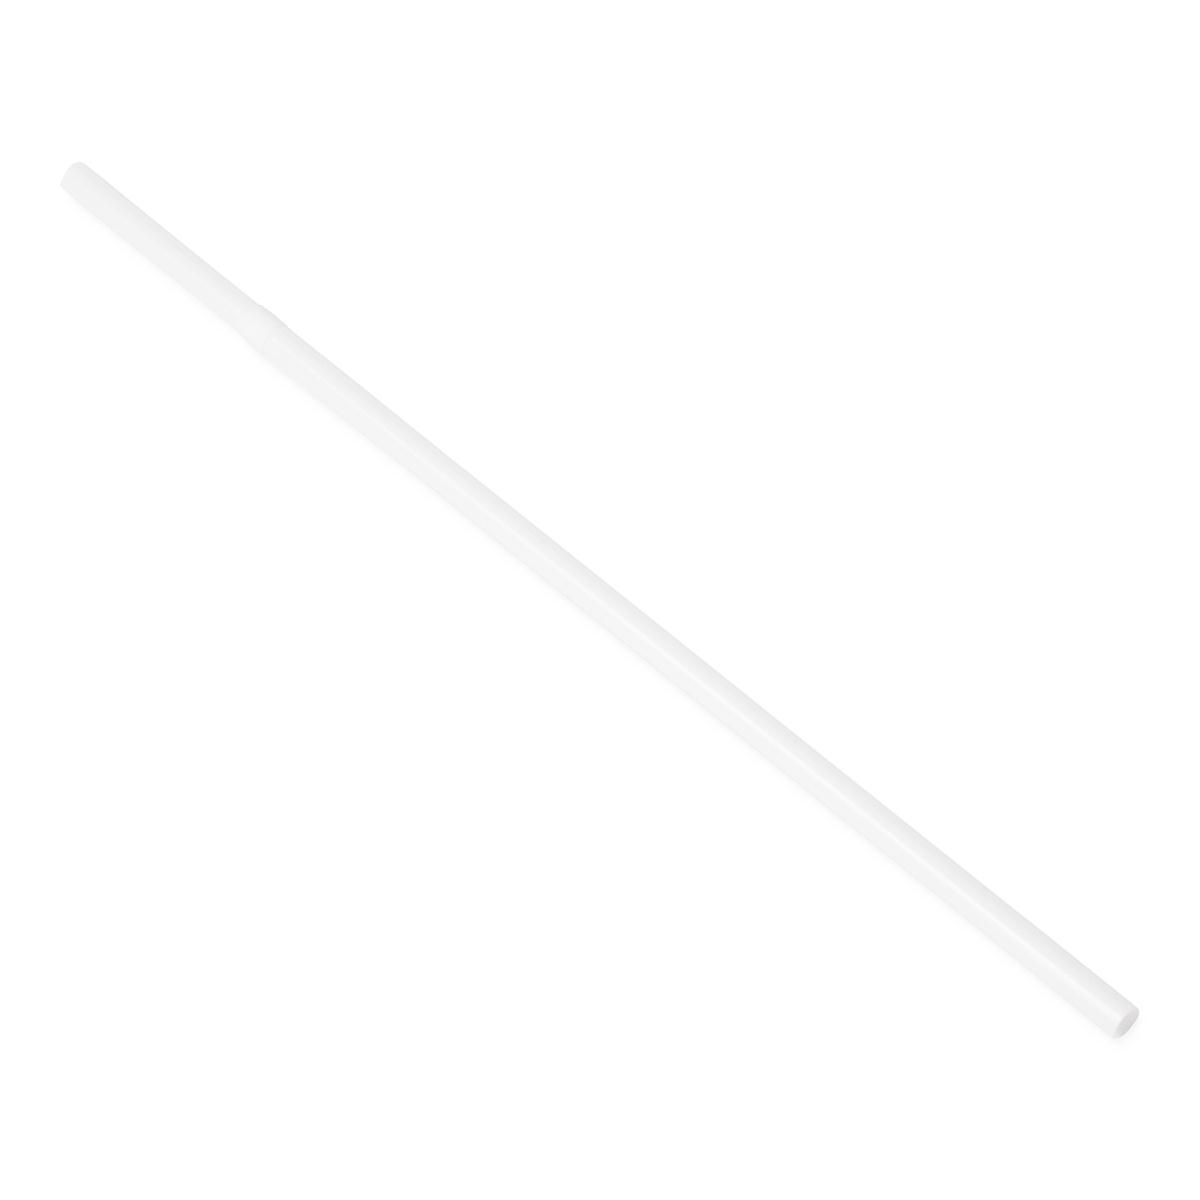 Flexible Plastic Drinking Straw